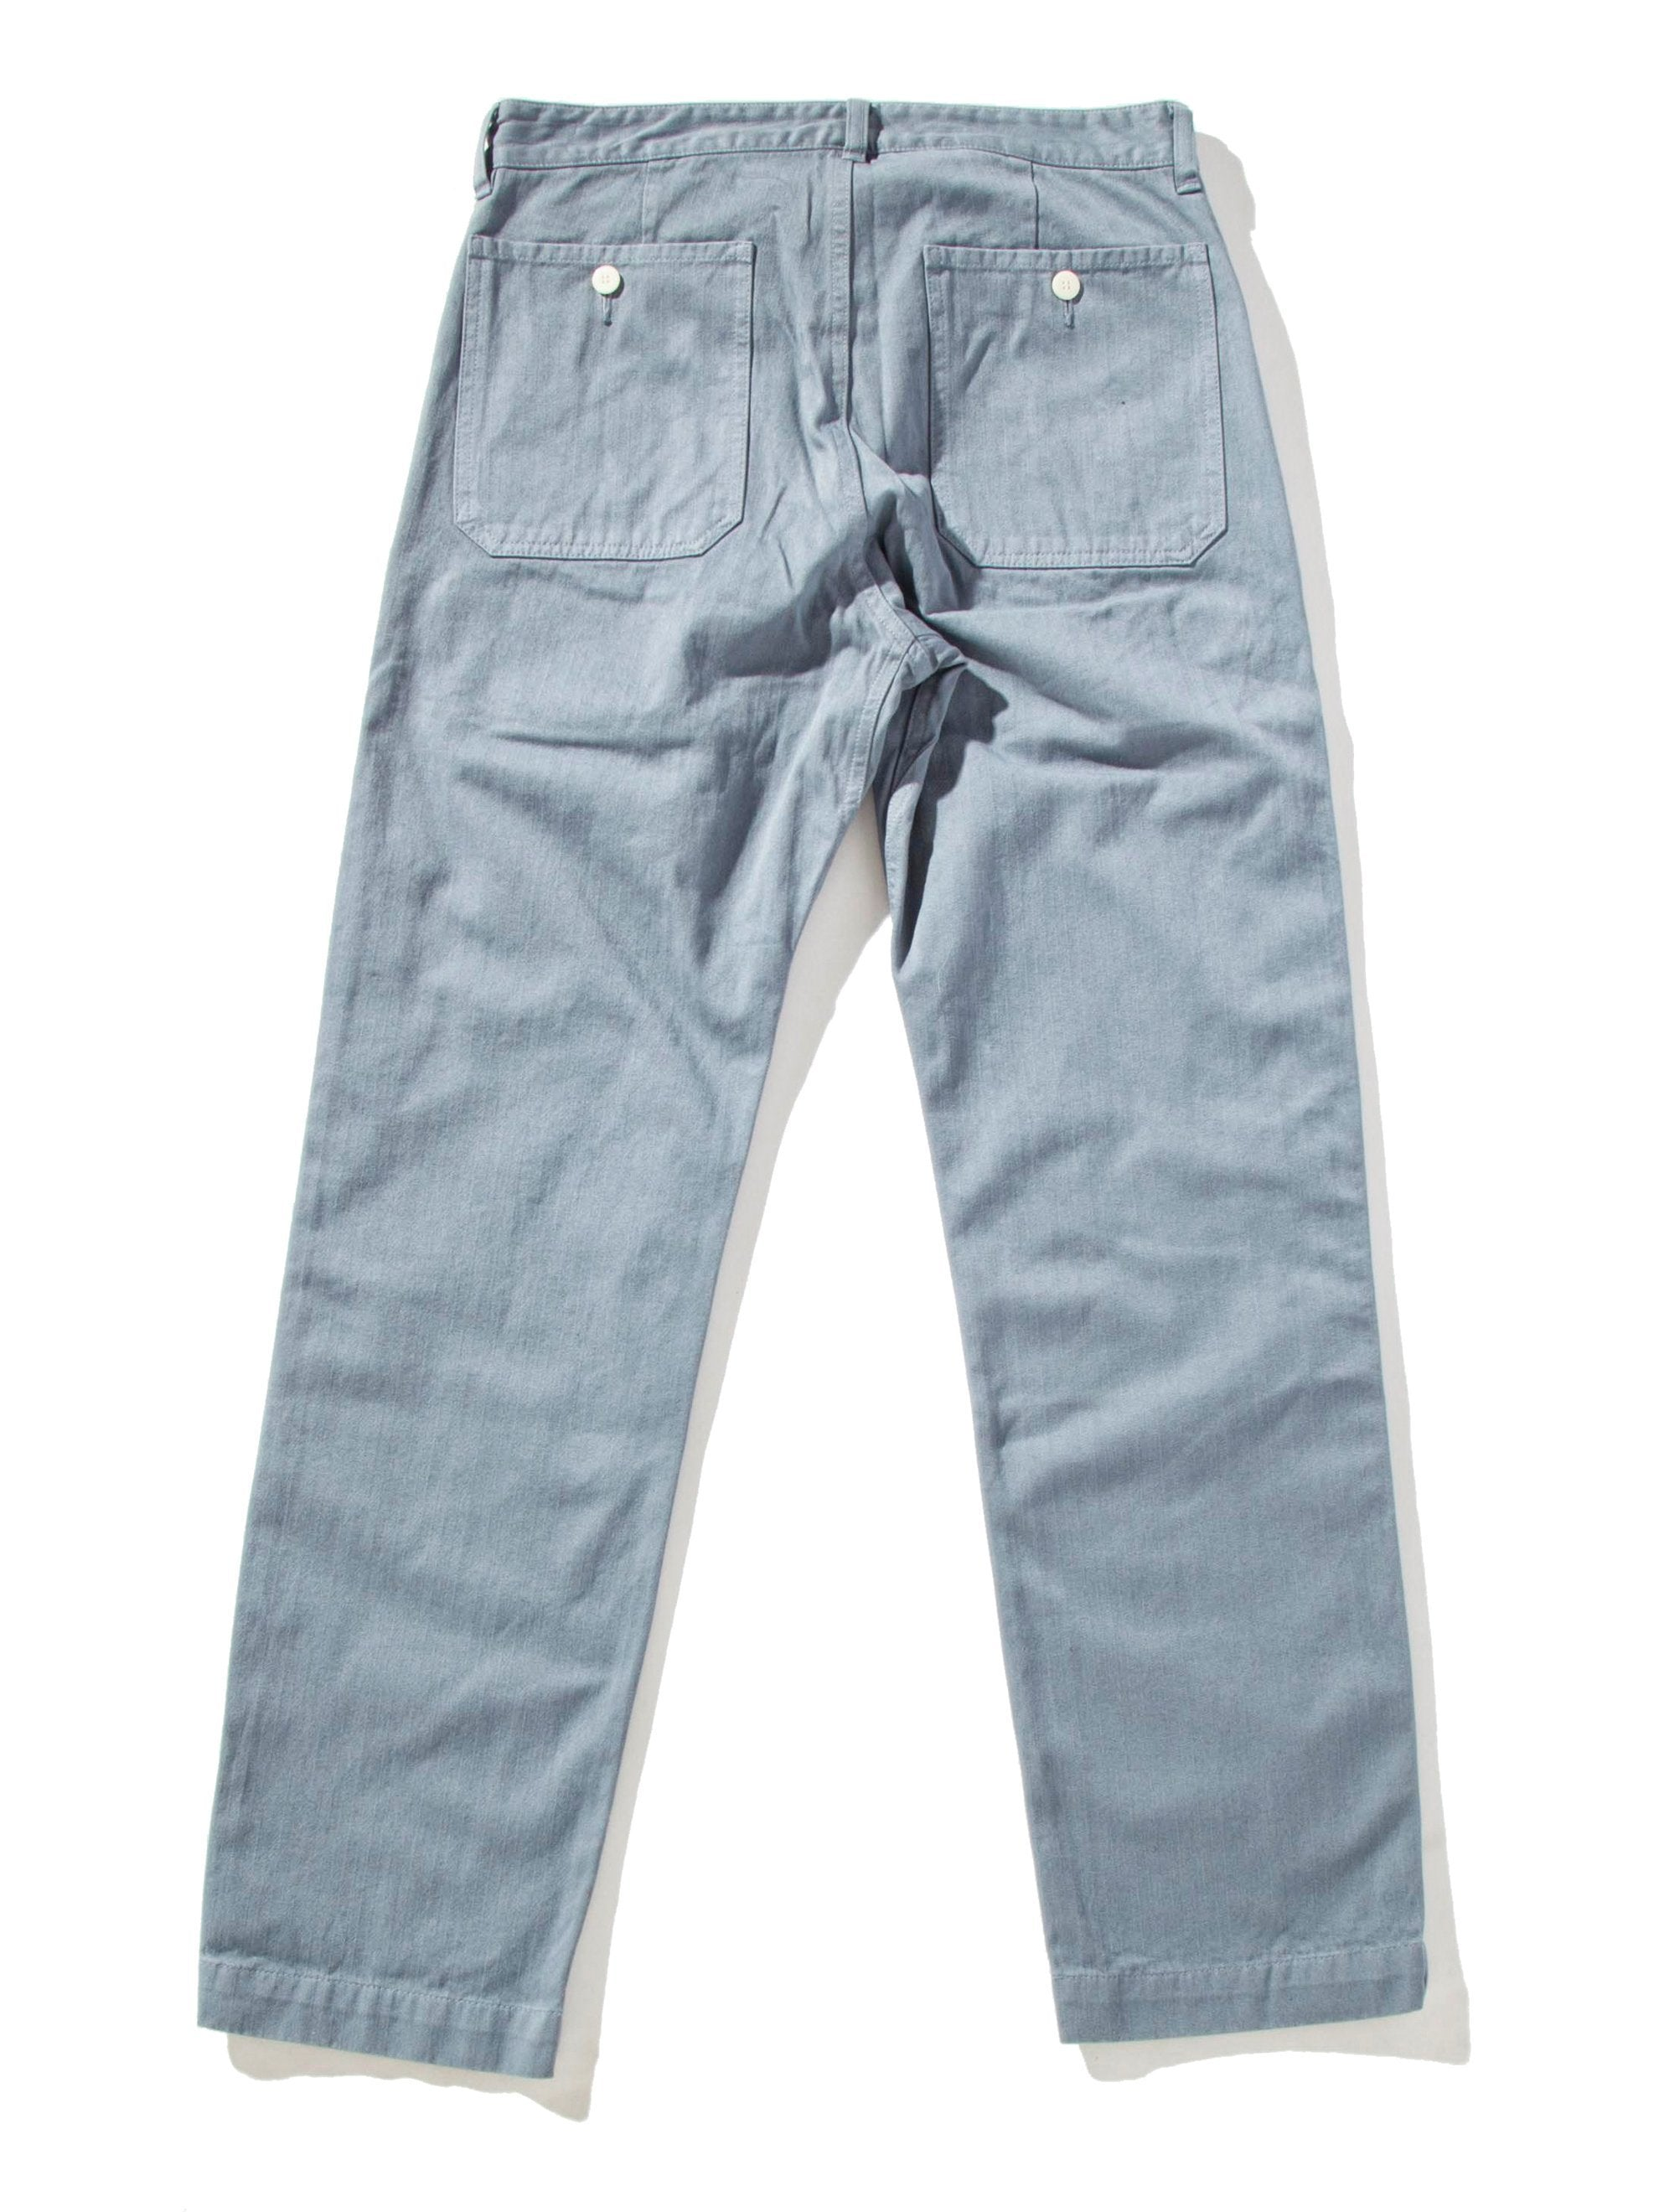 Blue Pastoral Pants Herringbone 15